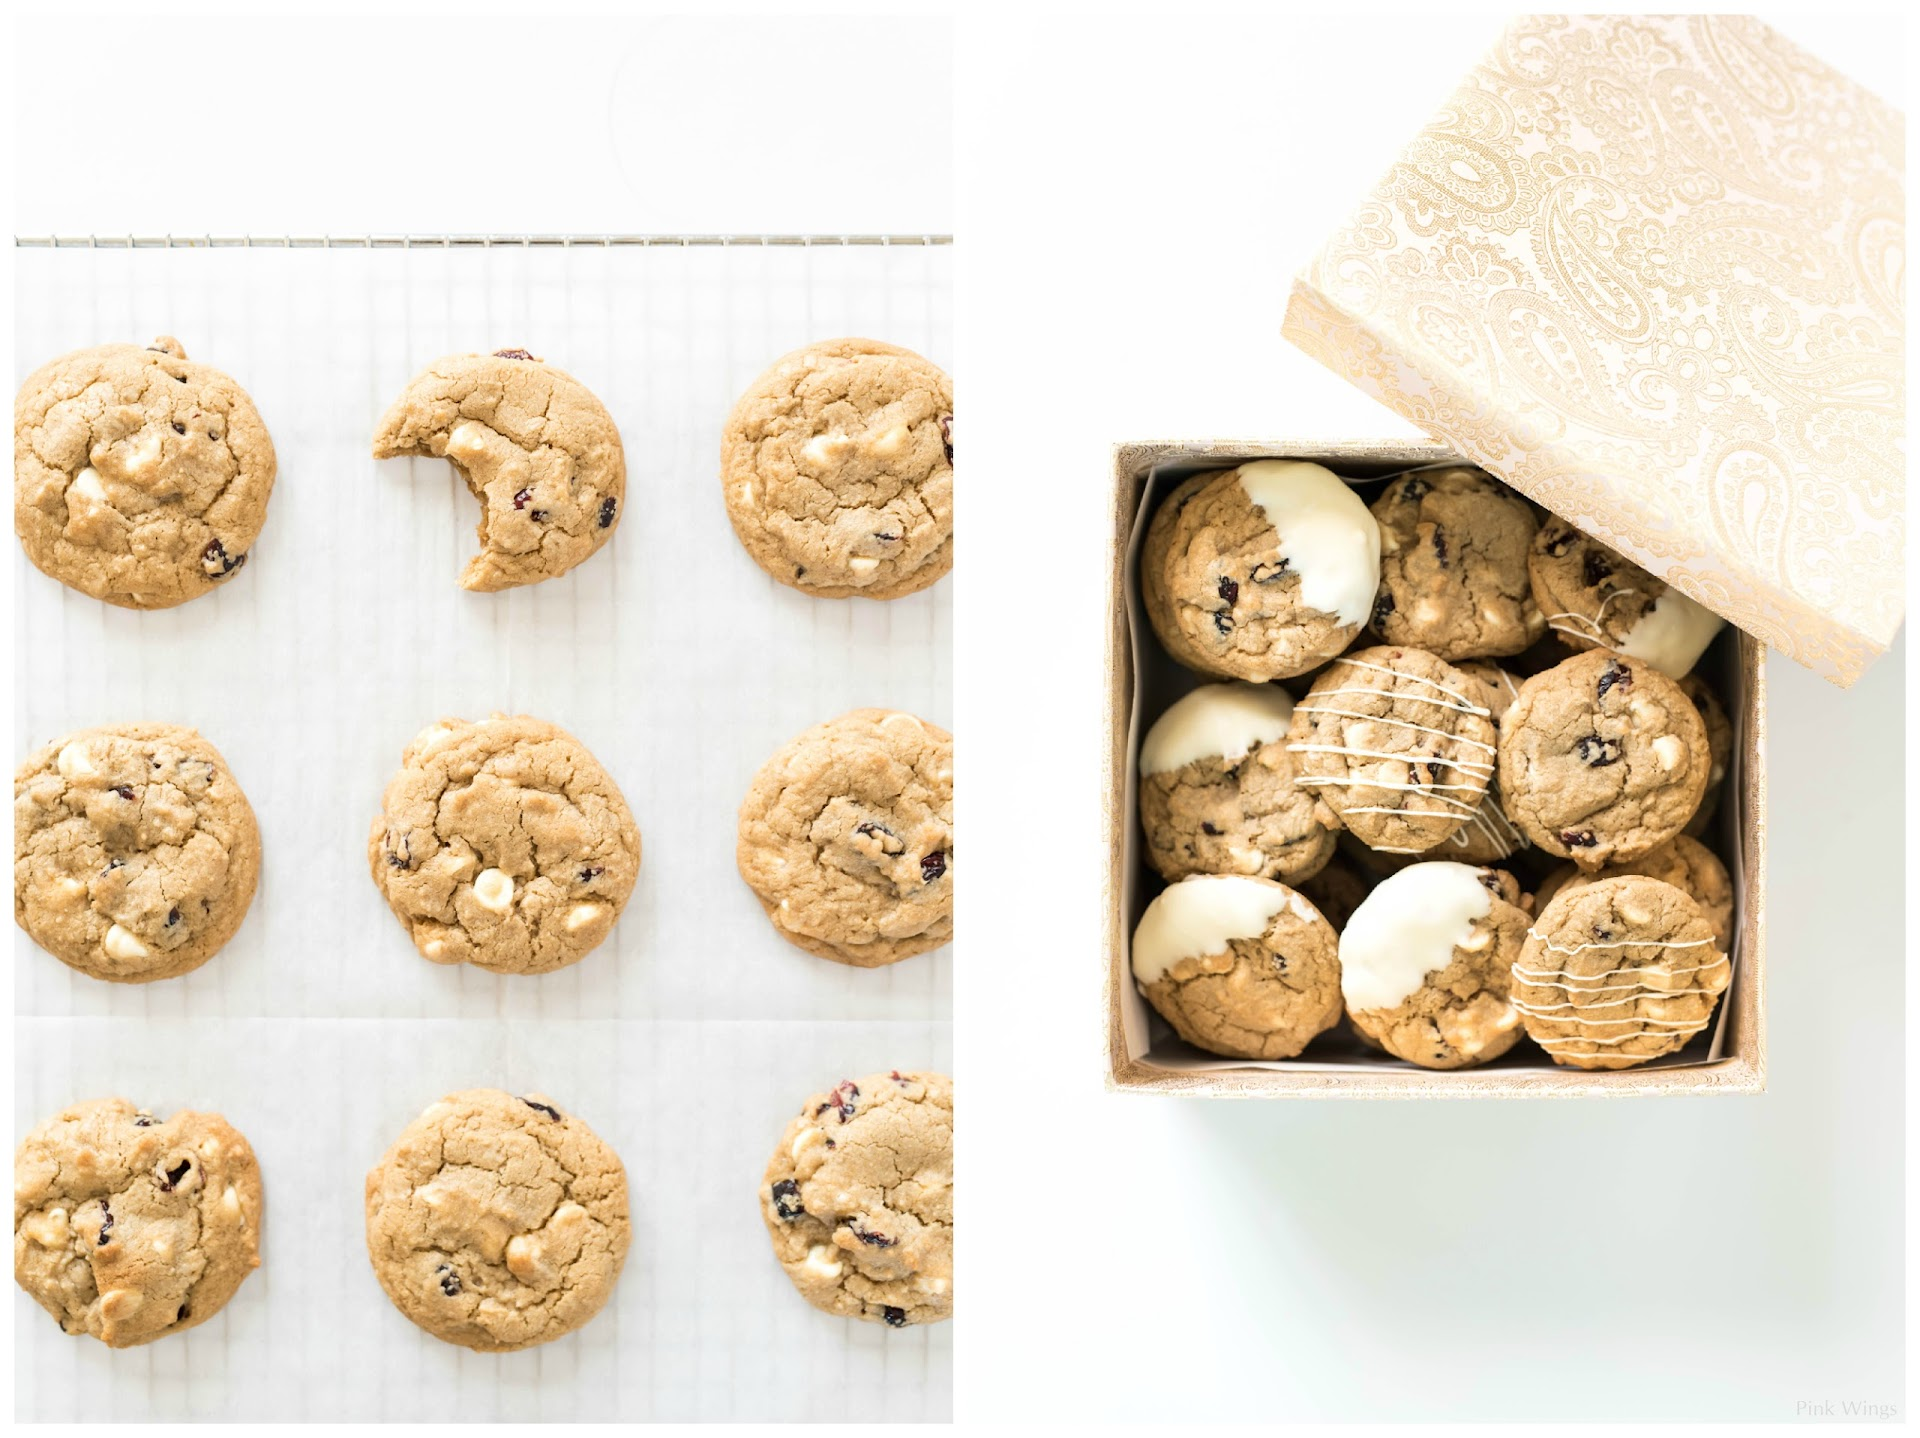 cookie gifts, holiday food gifts, cookie gift box, how to package cookies, dipped cookies, drizzled cookies, white chocolate recipe, christmas cookie recipe, easy cookie recipes, food photography, cookie photography, food blogger lds mormon, san francisco bay area, military